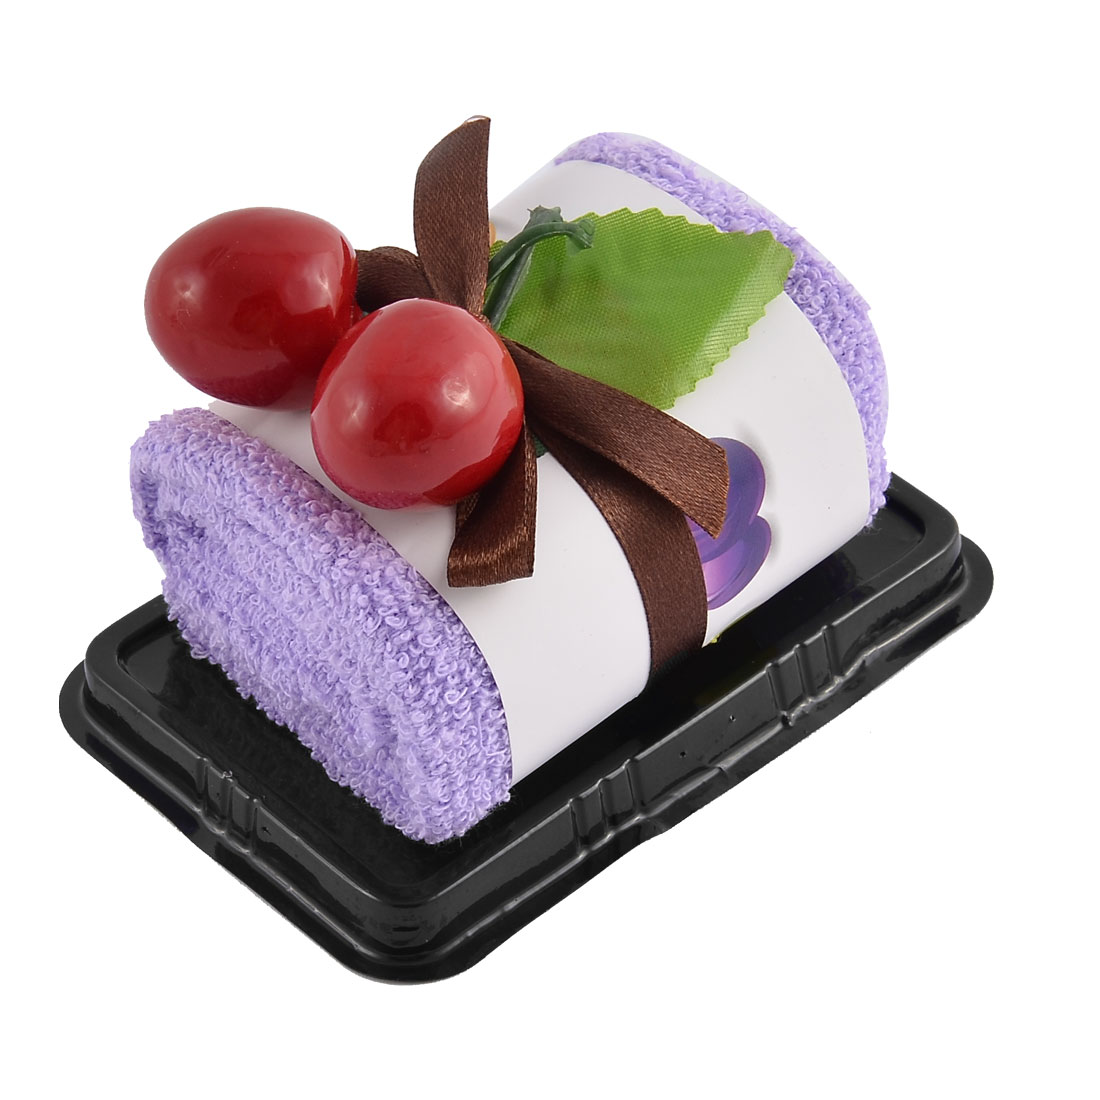 Plastic Simulated Cherry Decor Square Roll Cake Towel Gift Ornament Purple